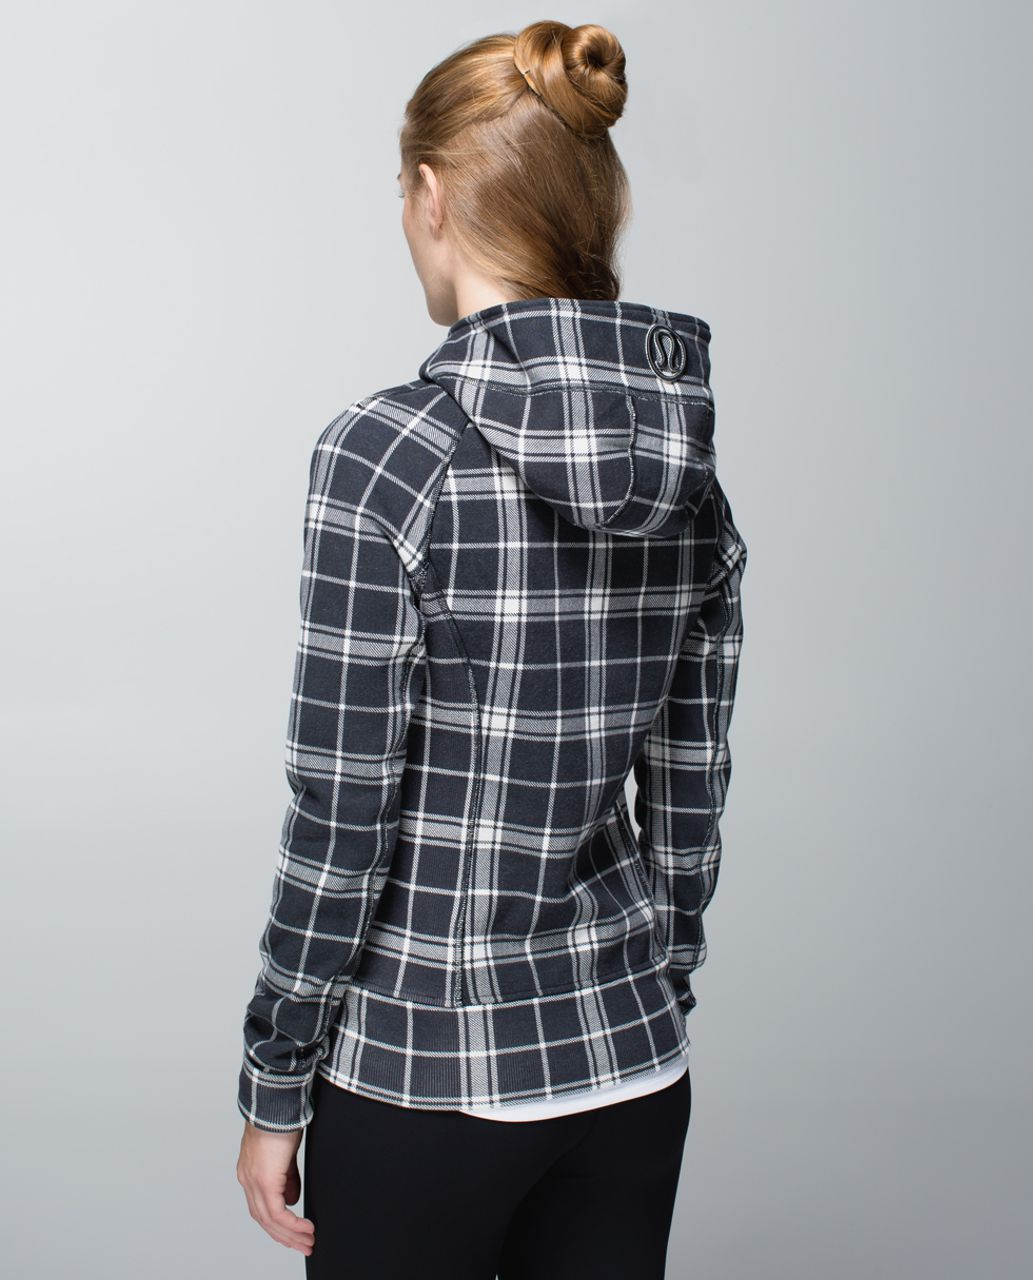 Lululemon Scuba Hoodie II - Varsity Plaid Printed Heathered Angel White Deep Coal / Ghost / Heathered Speckled Black